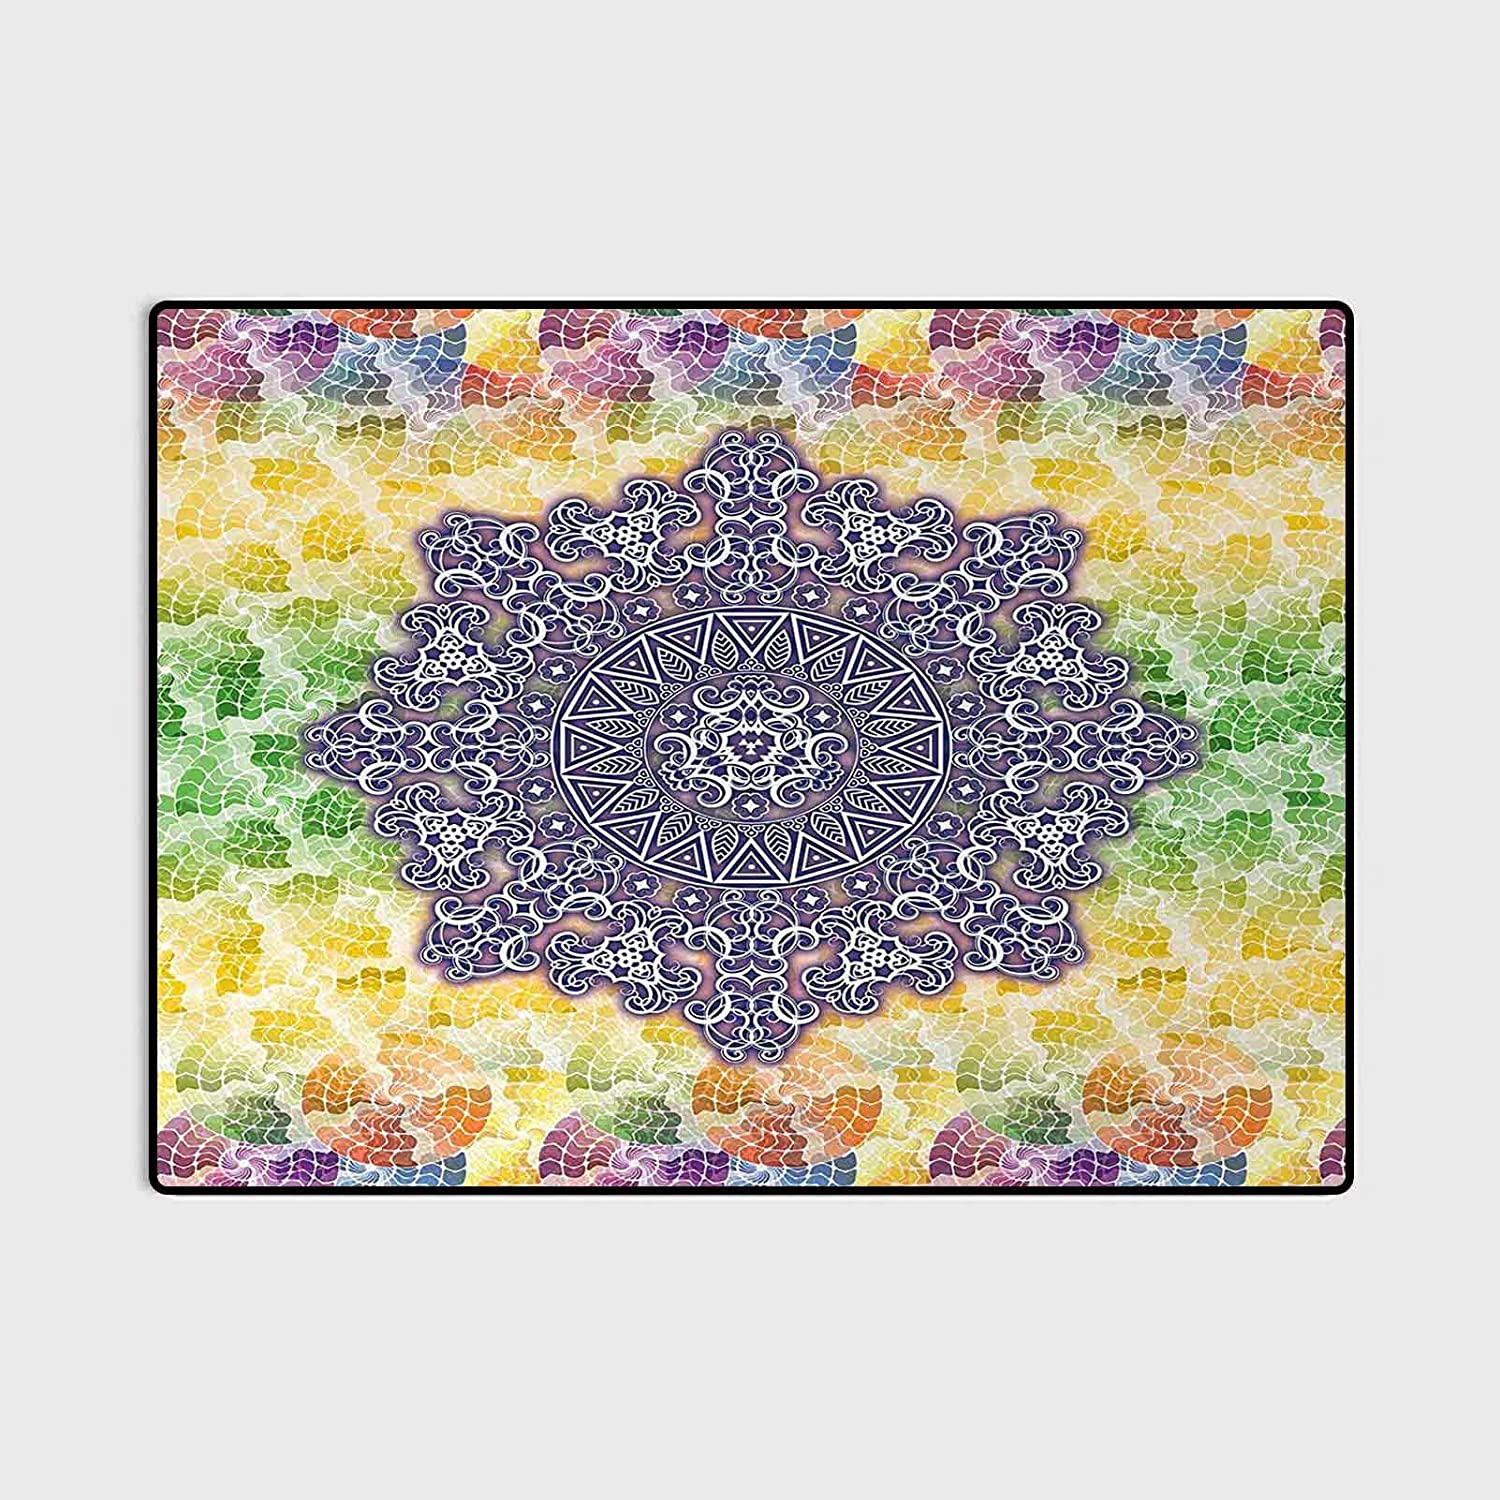 Hippie Outdoor Rugs for patios Finally popular brand Free shipping anywhere in the nation Tri and mats Kitchen Ancient